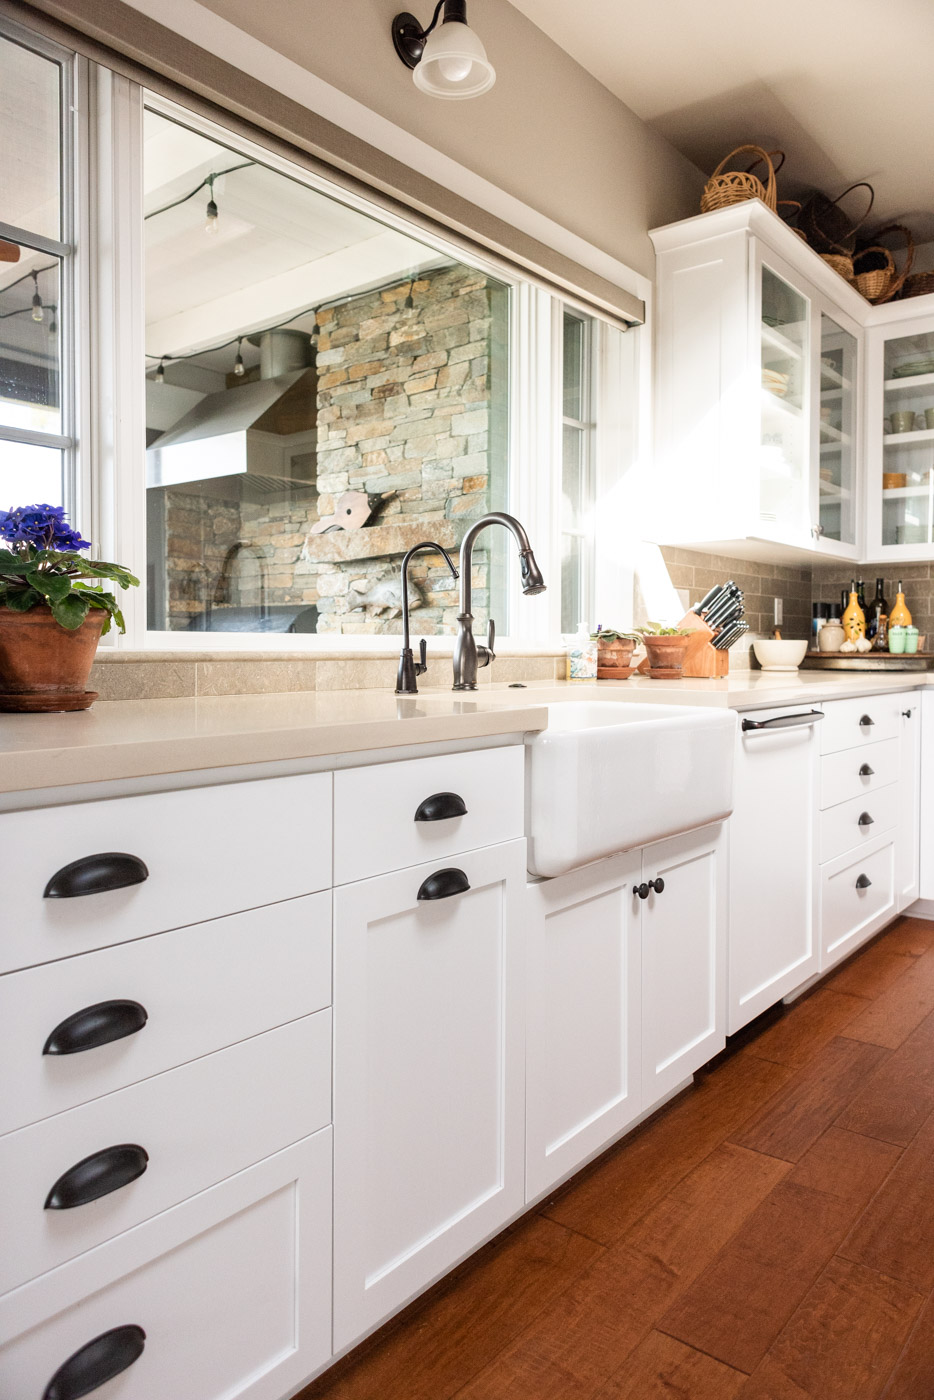 Coastal Craftsman kitchen with custom white painted shaker cabinets and farmhouse sink